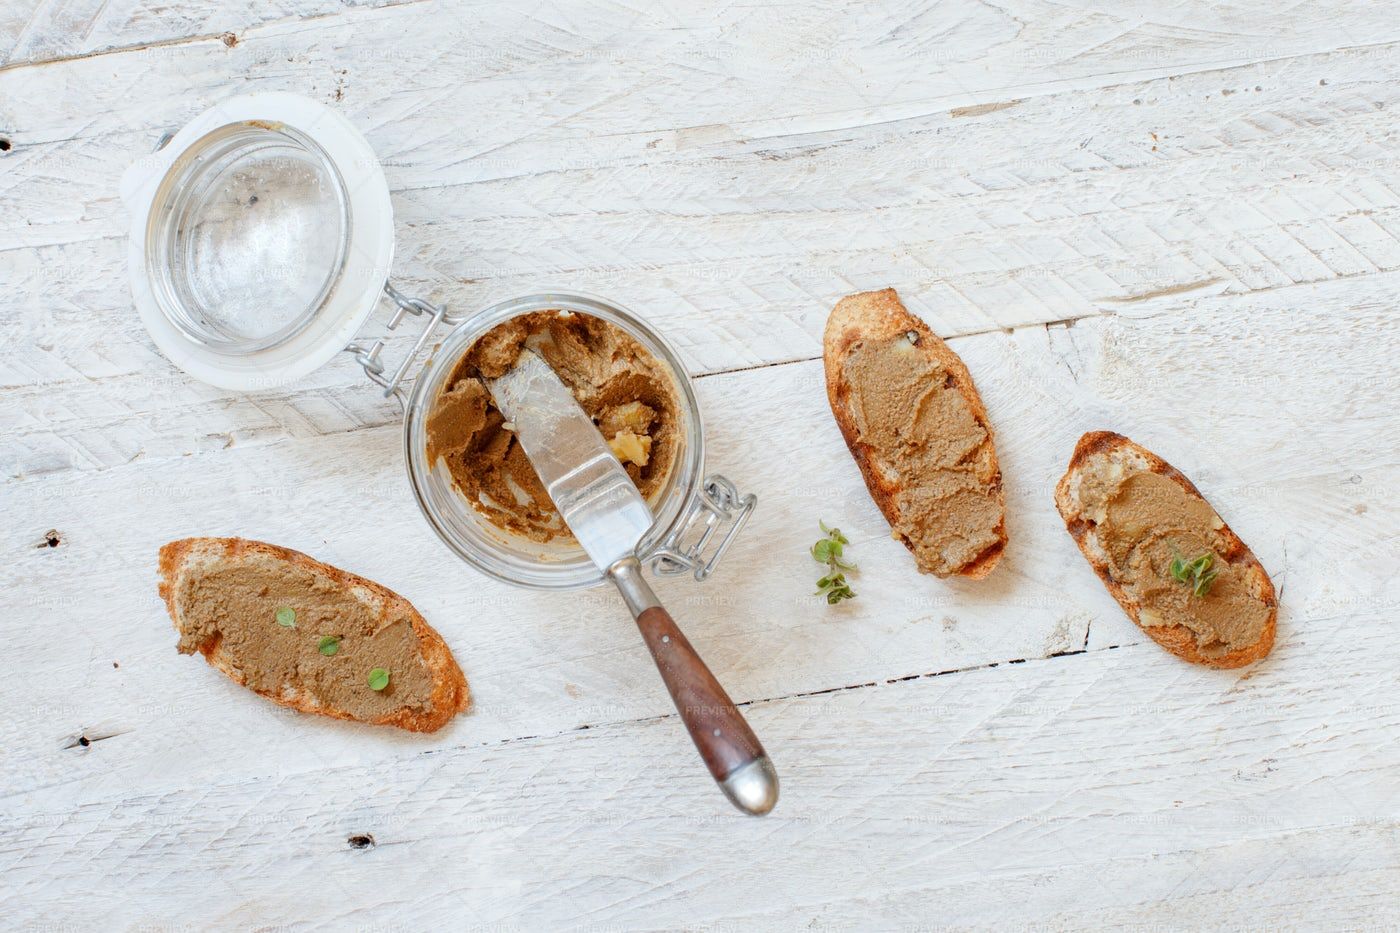 Sandwiches With Liver Pate: Stock Photos